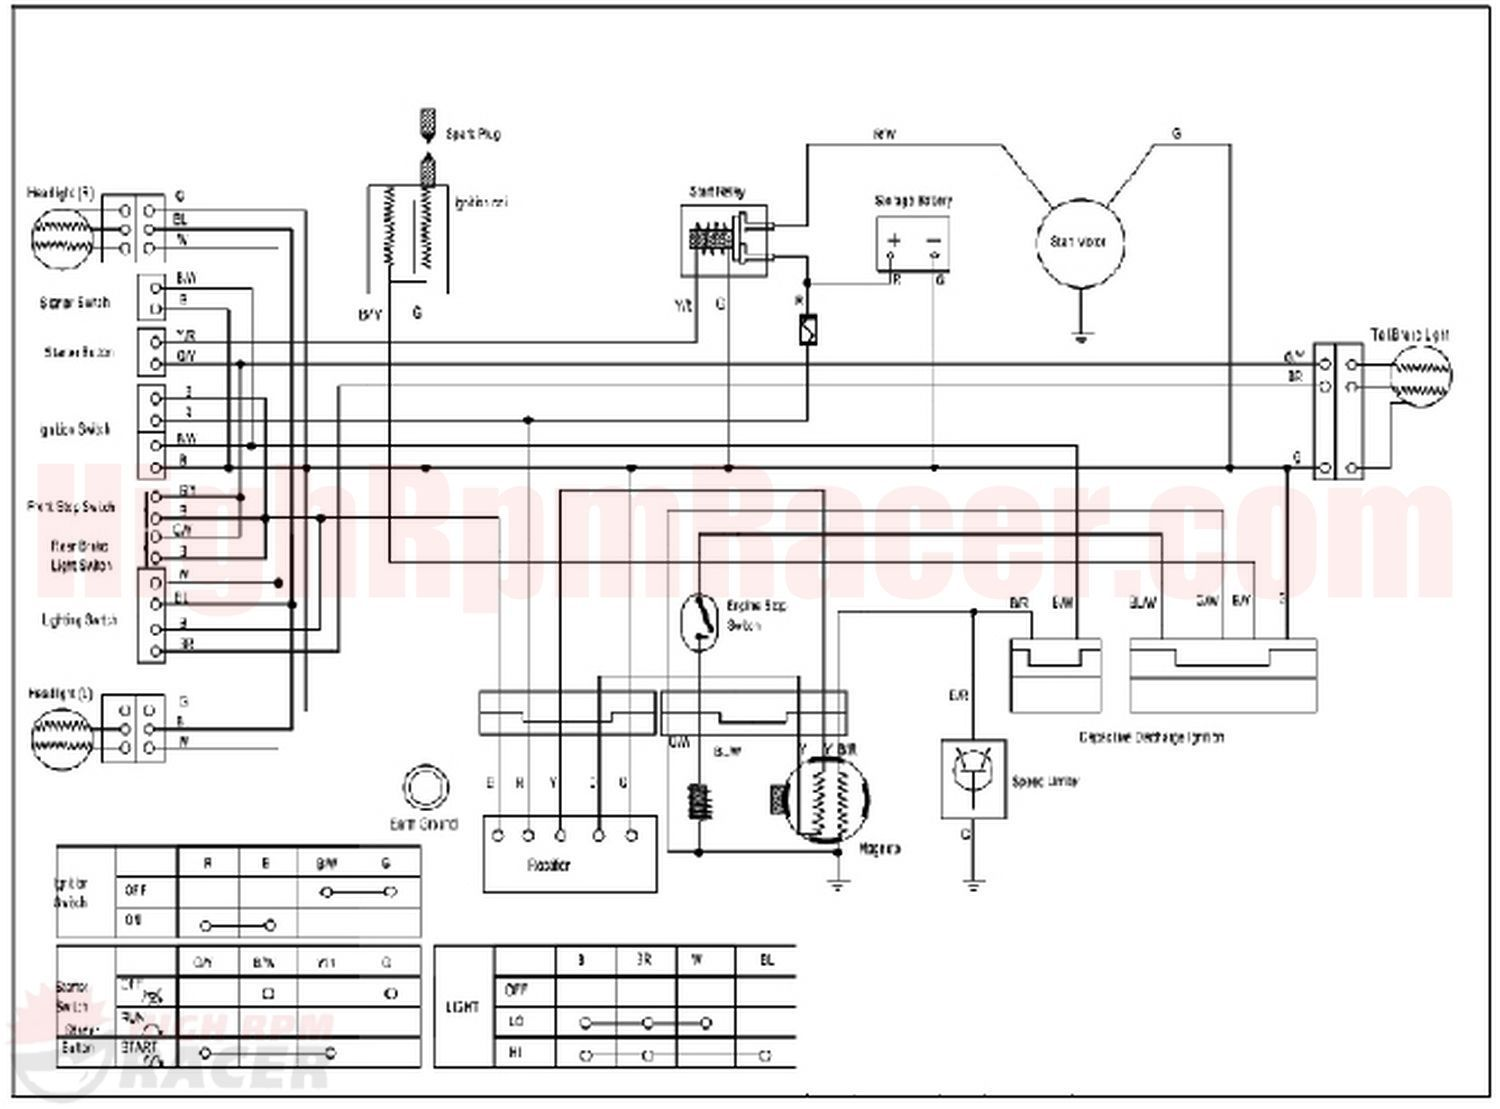 Baja 90Cc ATV Wiring Diagram | 90cc atv, Atv, Electrical ...  Cc Atv Engine Diagrams on